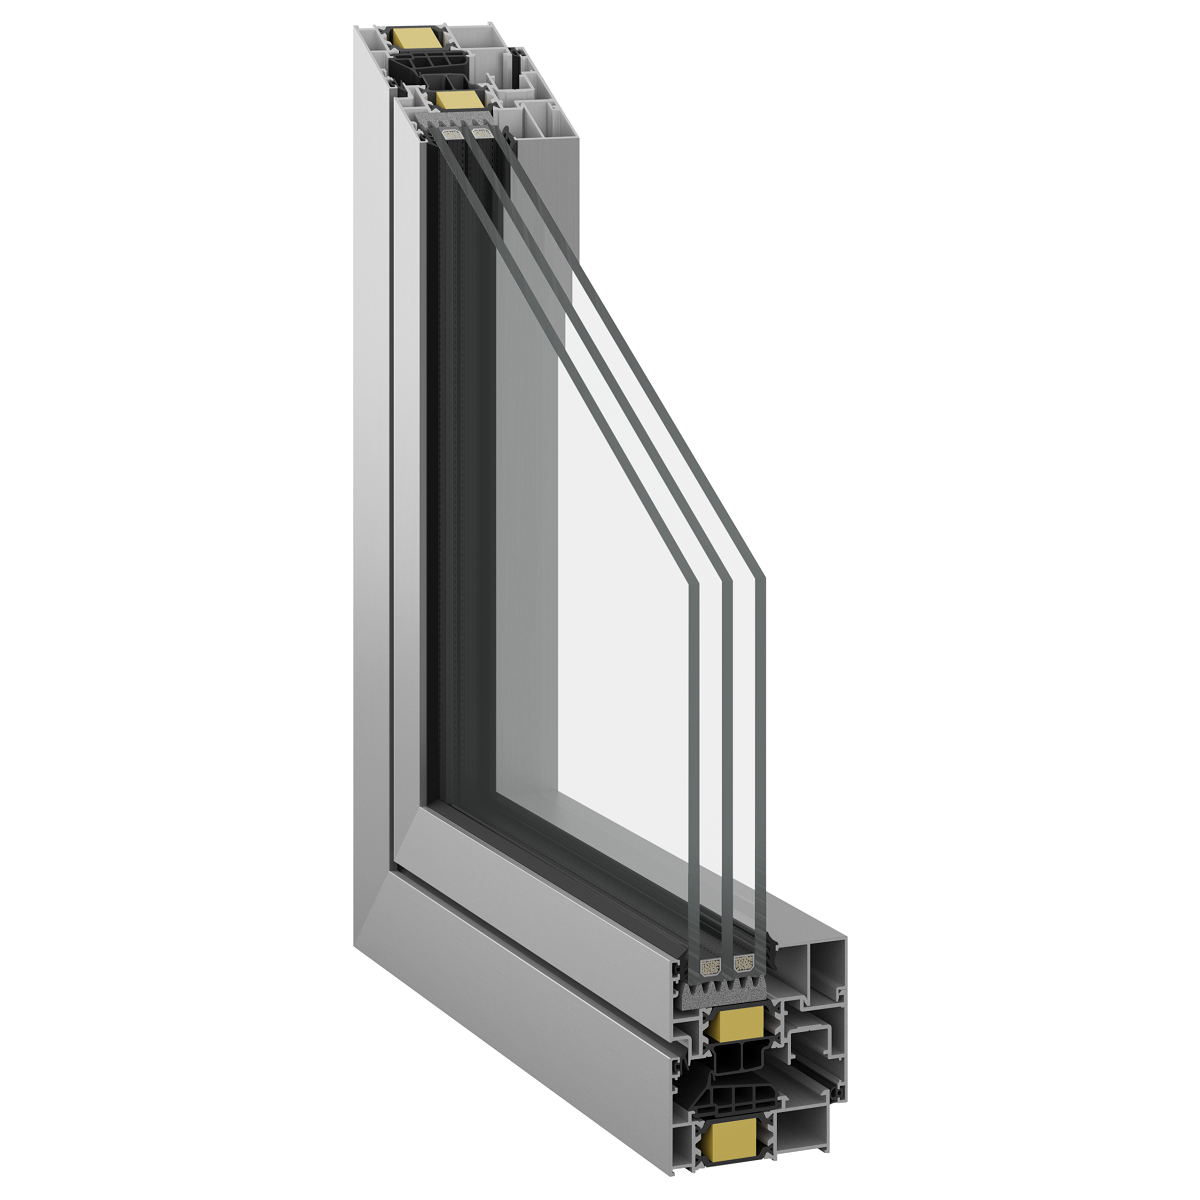 Inoform F70 Smart with reduced sash profile height